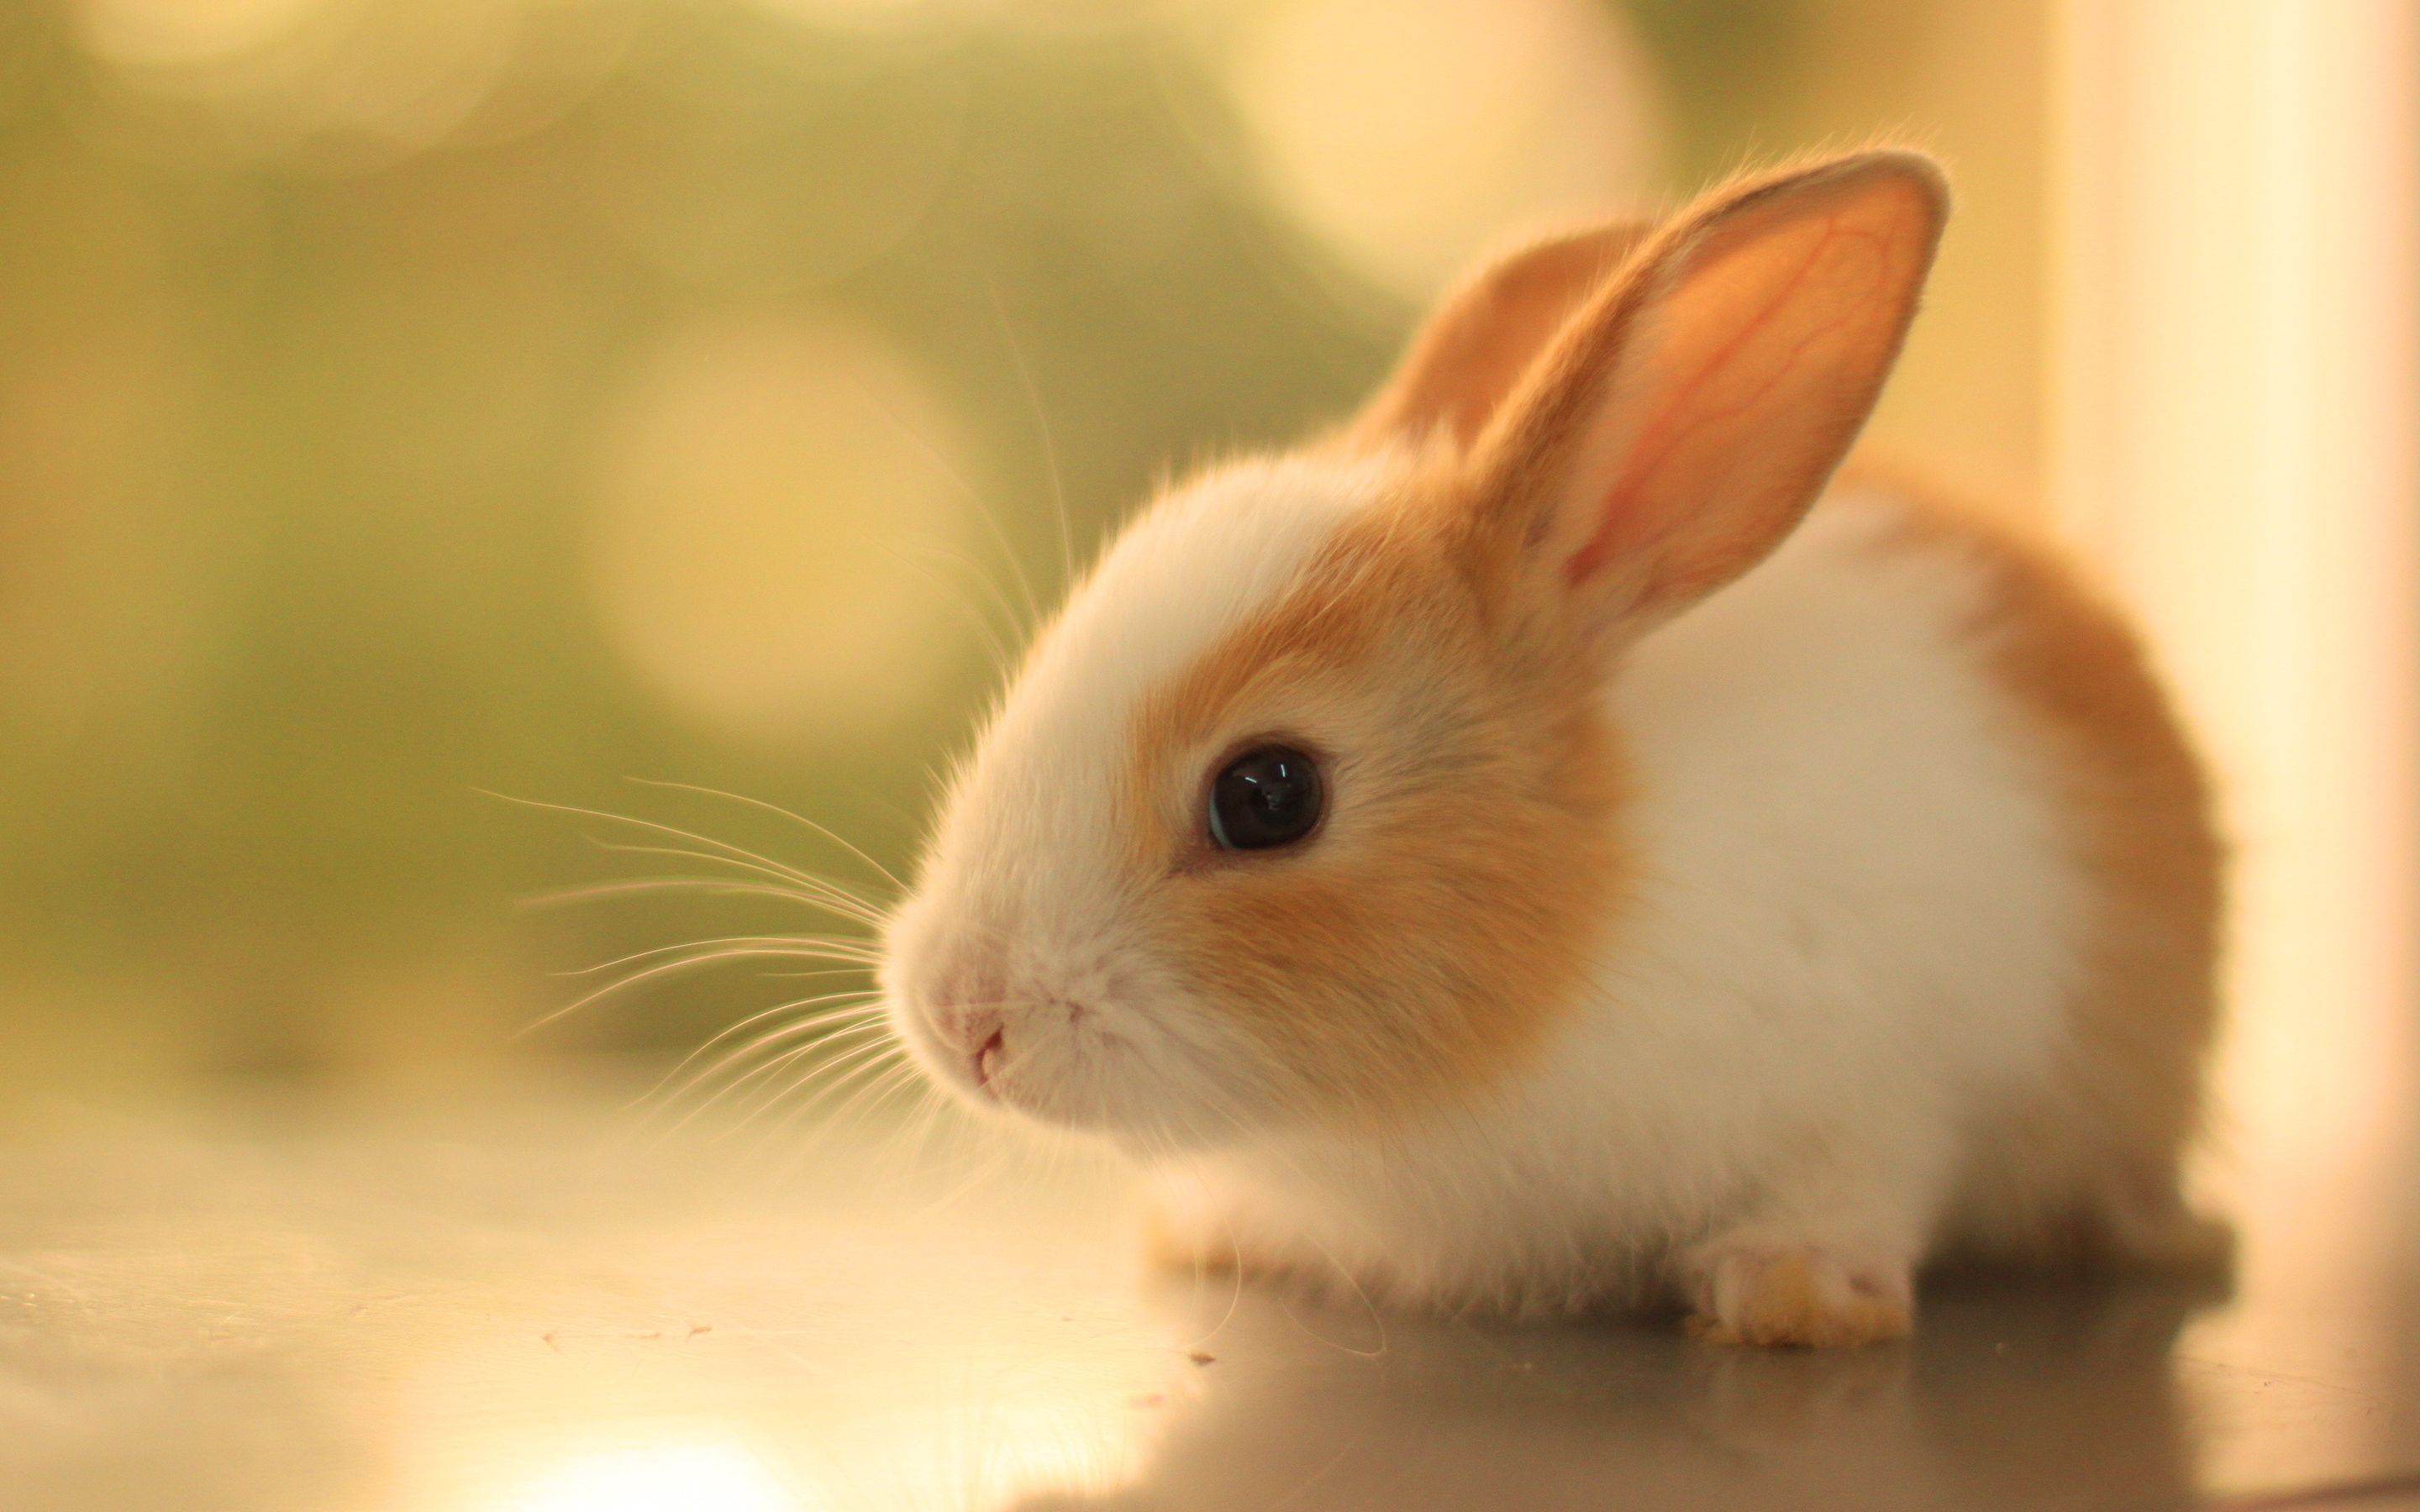 Rabbits image Bunnies HD wallpapers and backgrounds photos